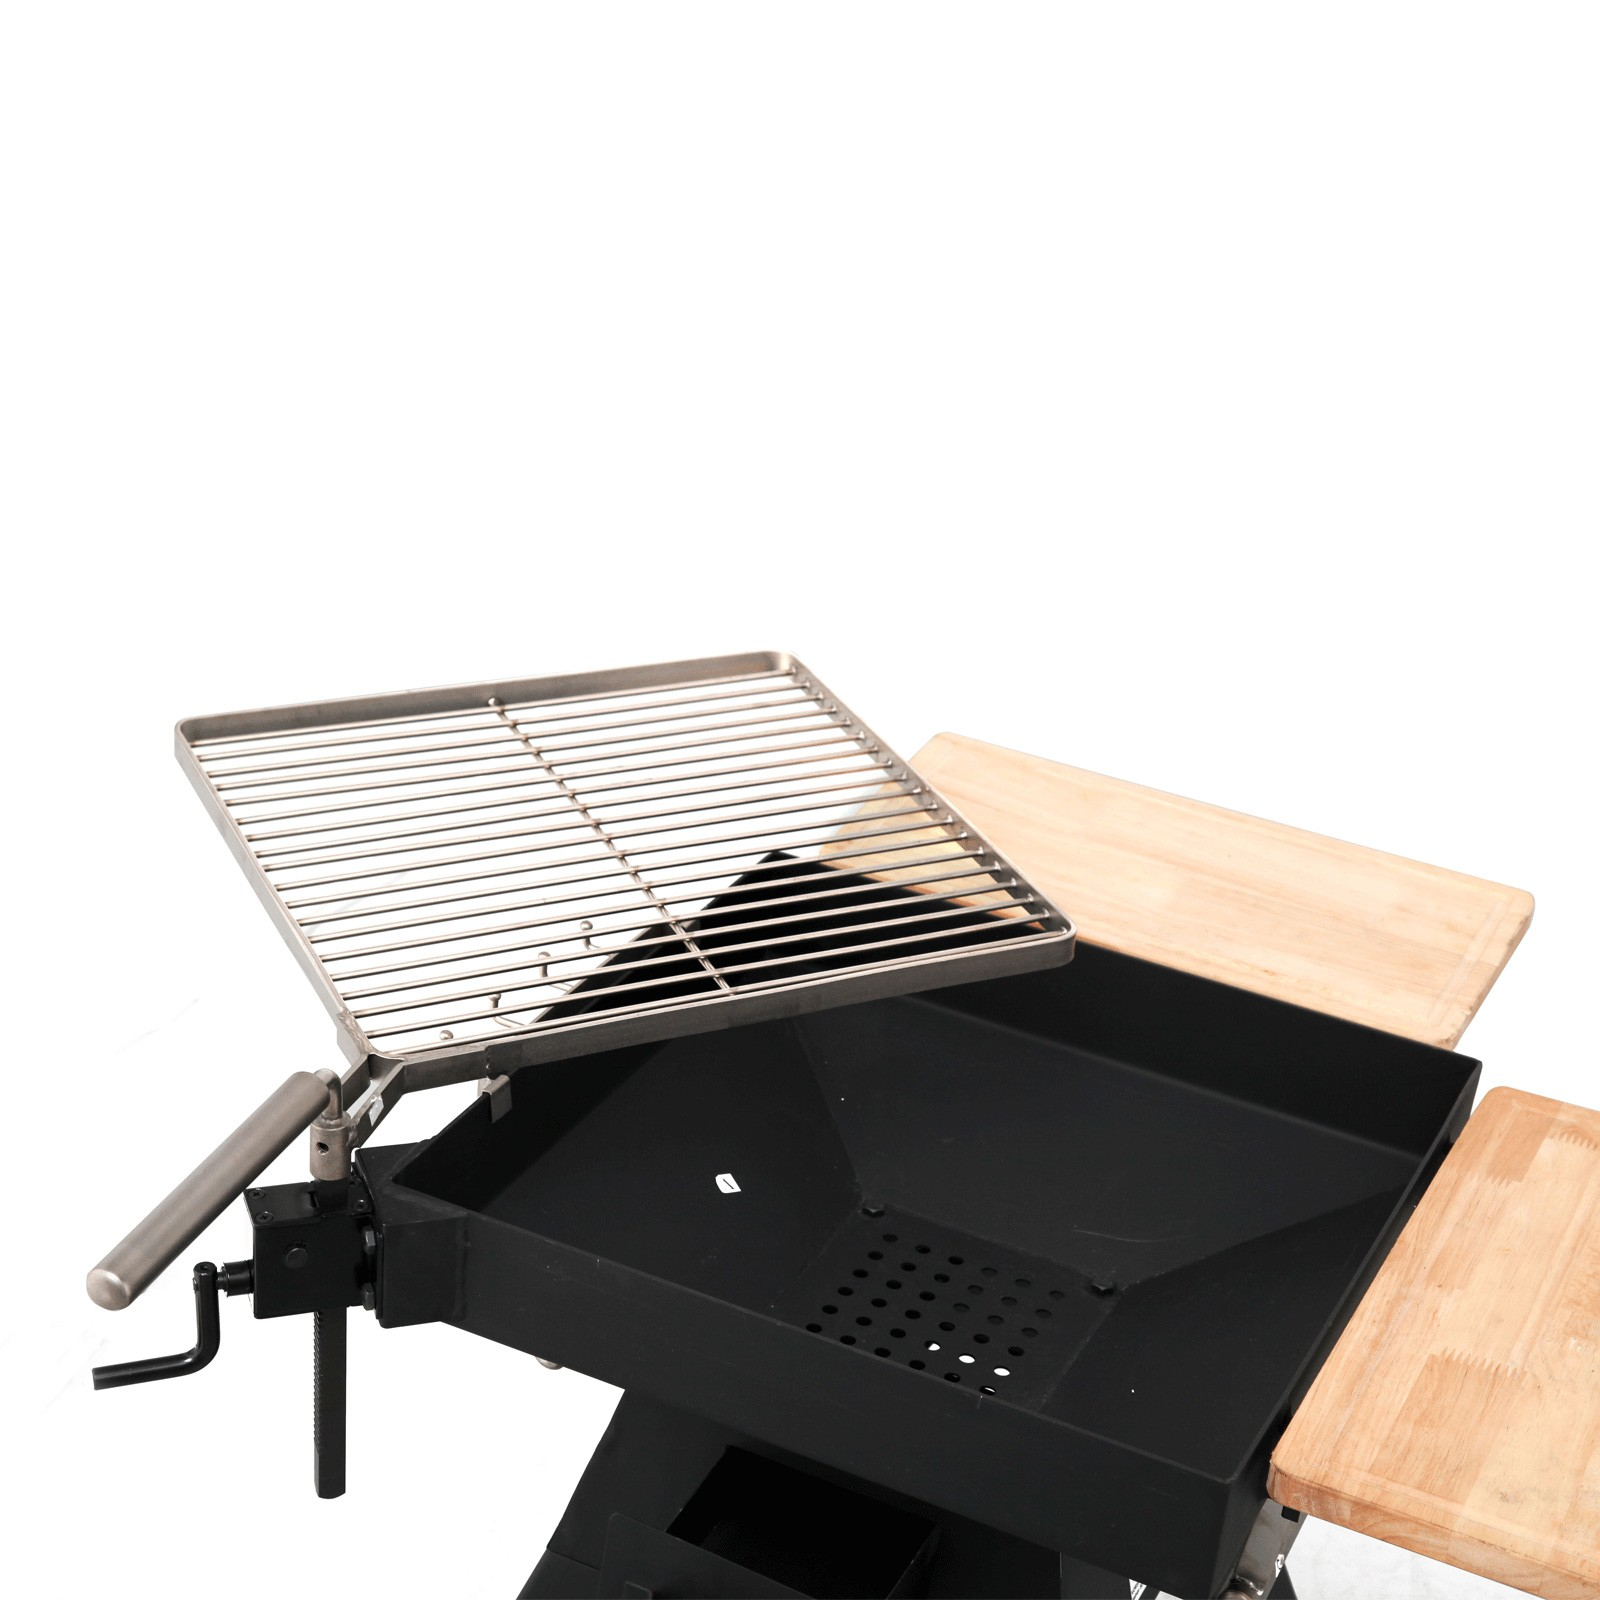 tepro holzkohlengrill standgrill seaport edelstahl grillrost schwenkrost grill 4011964141650 ebay. Black Bedroom Furniture Sets. Home Design Ideas